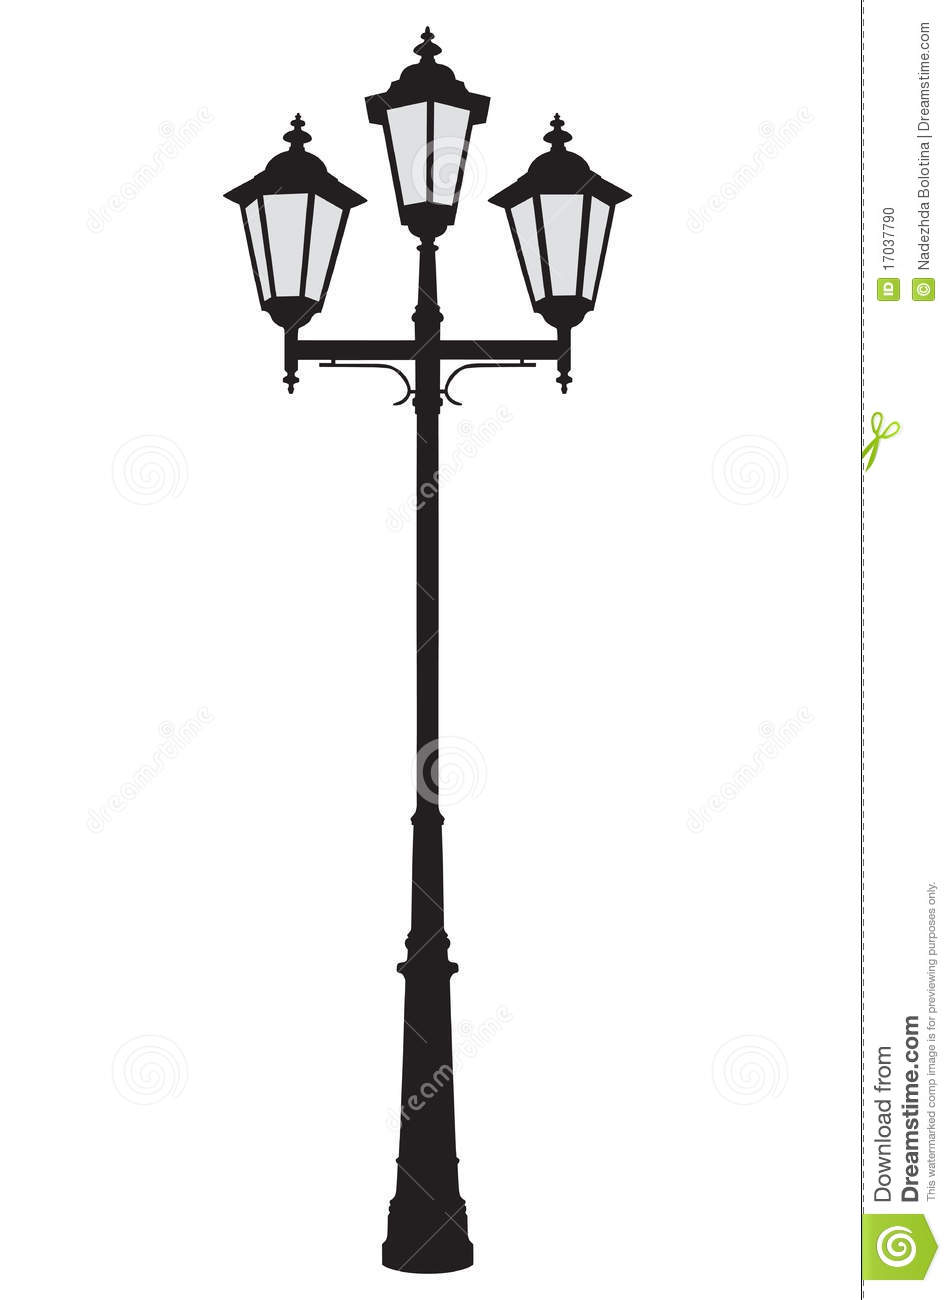 Lamppost, vector stock vector. Illustration of background - 17037790 for Street Lamp Post Vector  575lpg